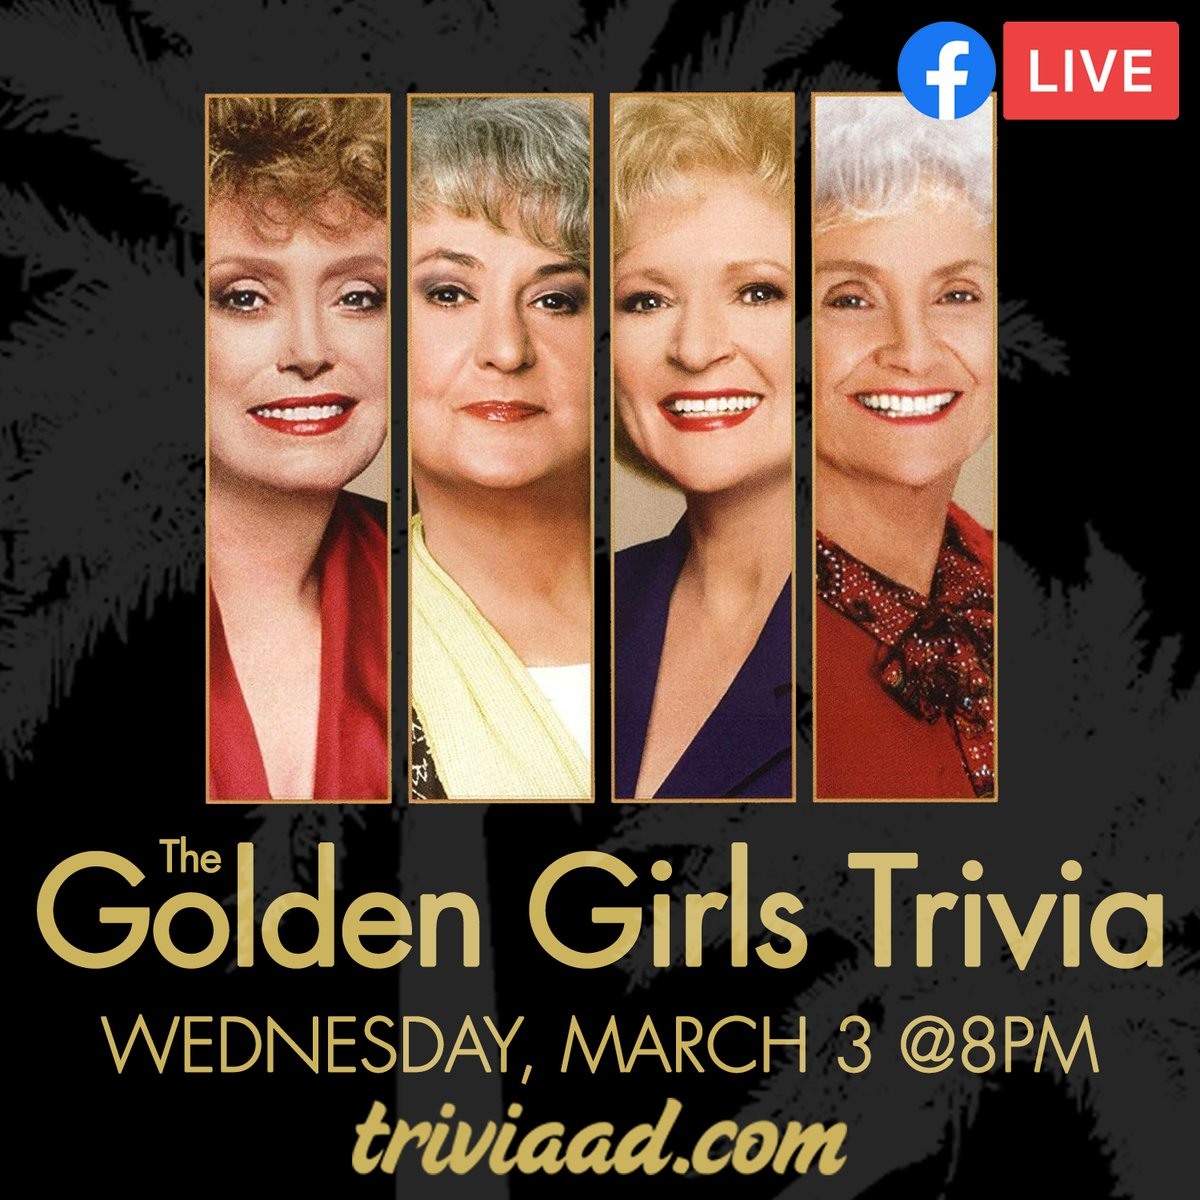 #TheGoldenGirls #Trivia via Facebook Live-Stream this Wednesday, March 3 at 8pm ET. RSVP GOING on the Facebook event at;  #GoldenGirls #ThemedTrivia #FreeEvents #BettyWhite